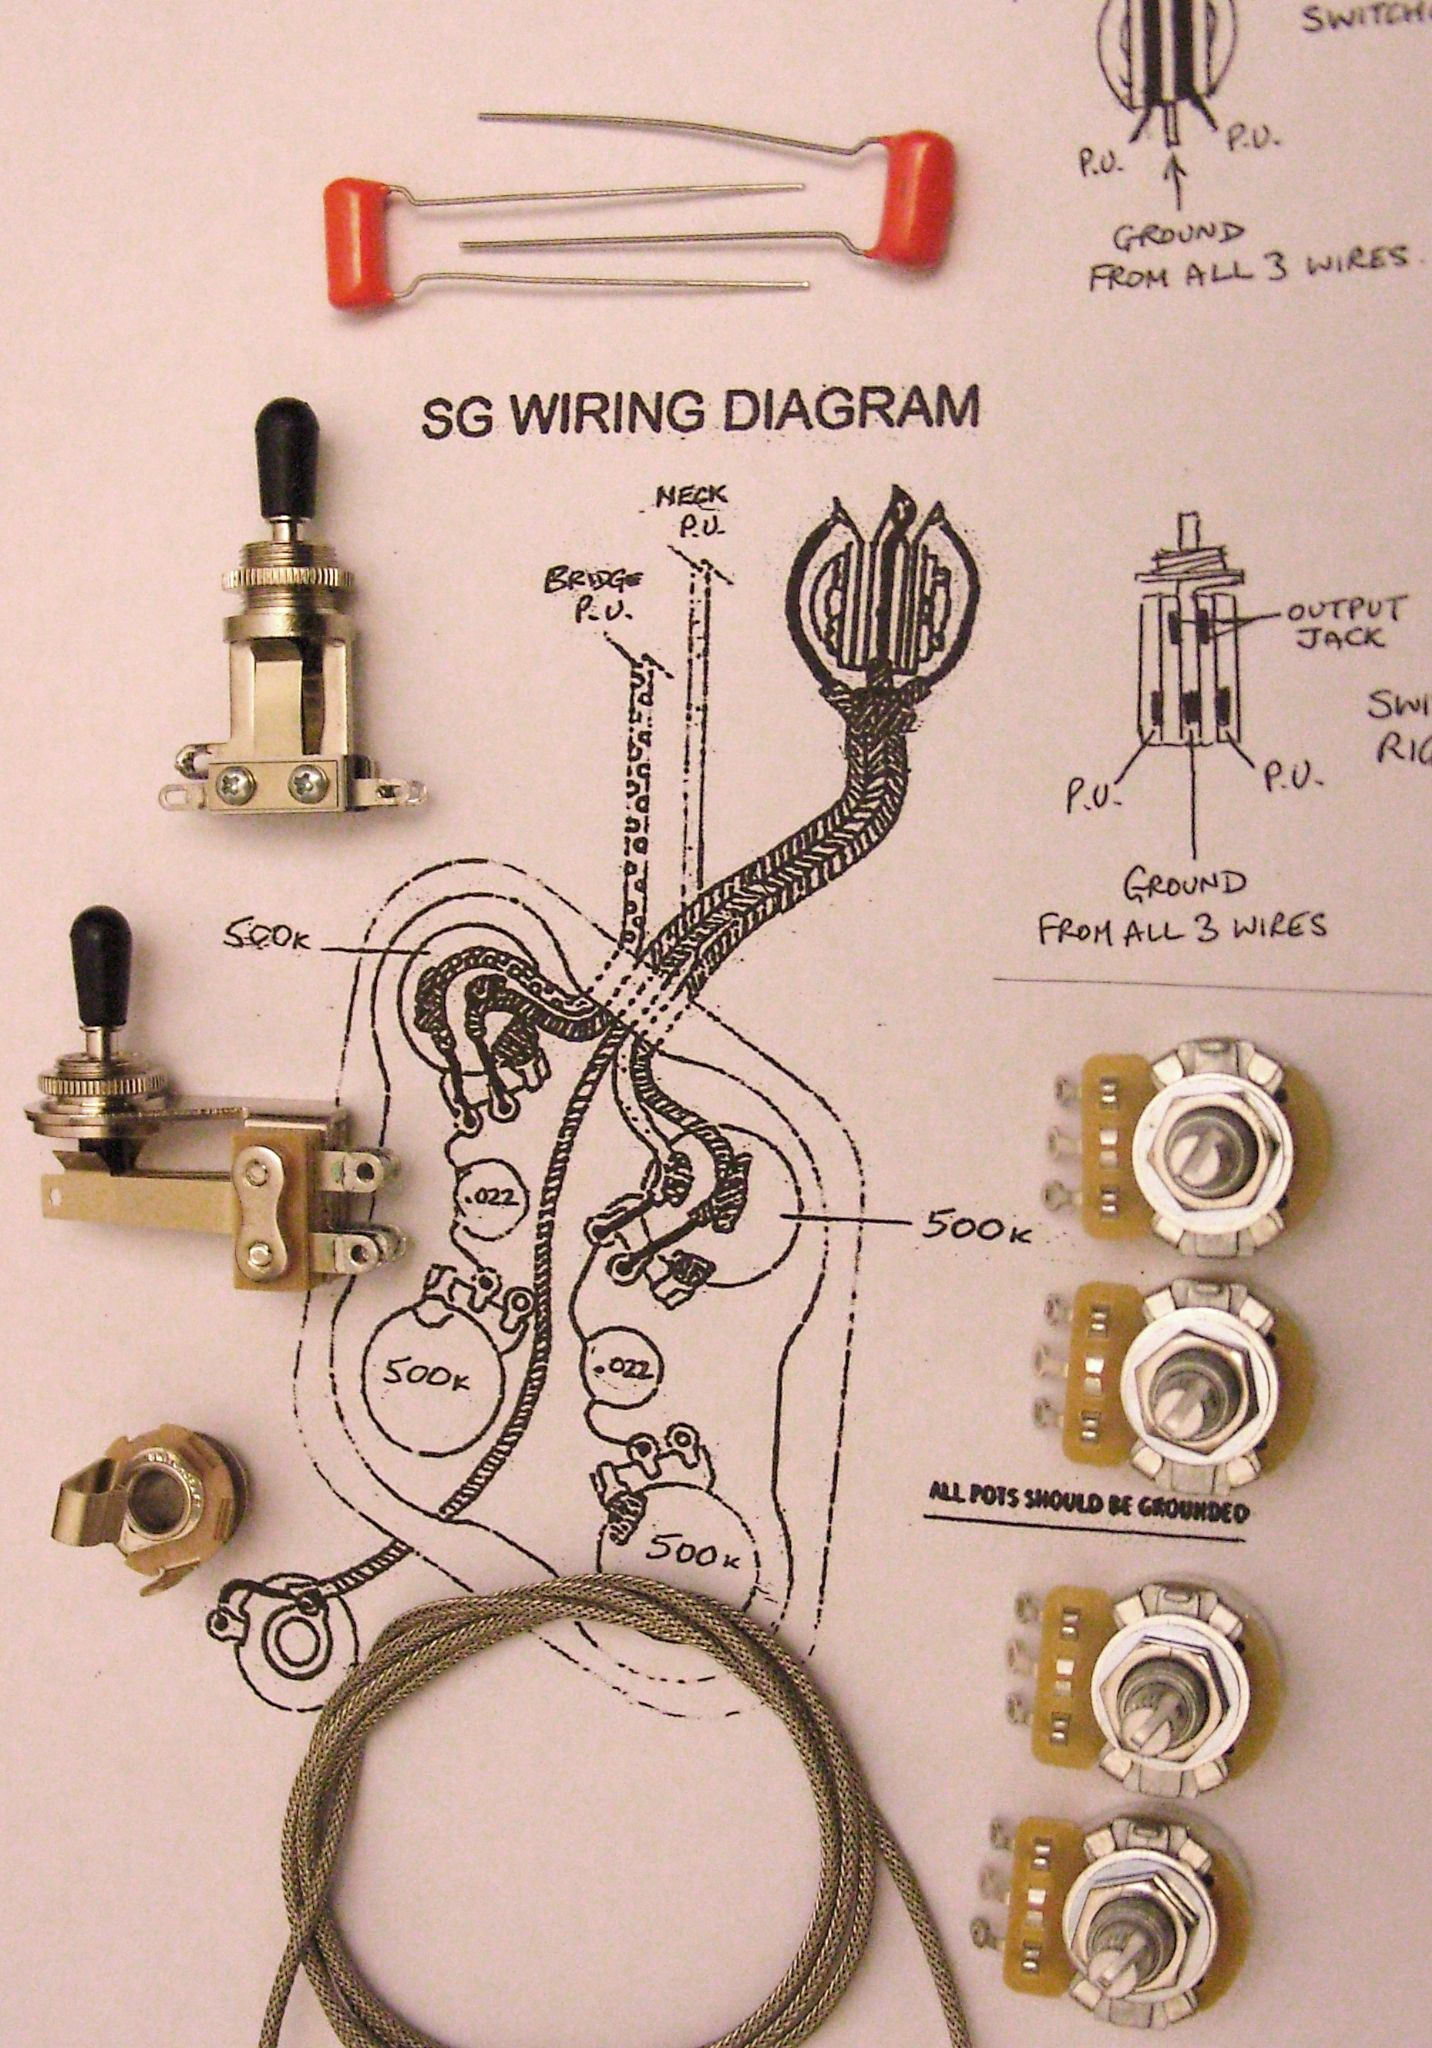 3 way toggle switch guitar wiring diagram 7th grade math venn worksheet kit for sg with short switchcraft